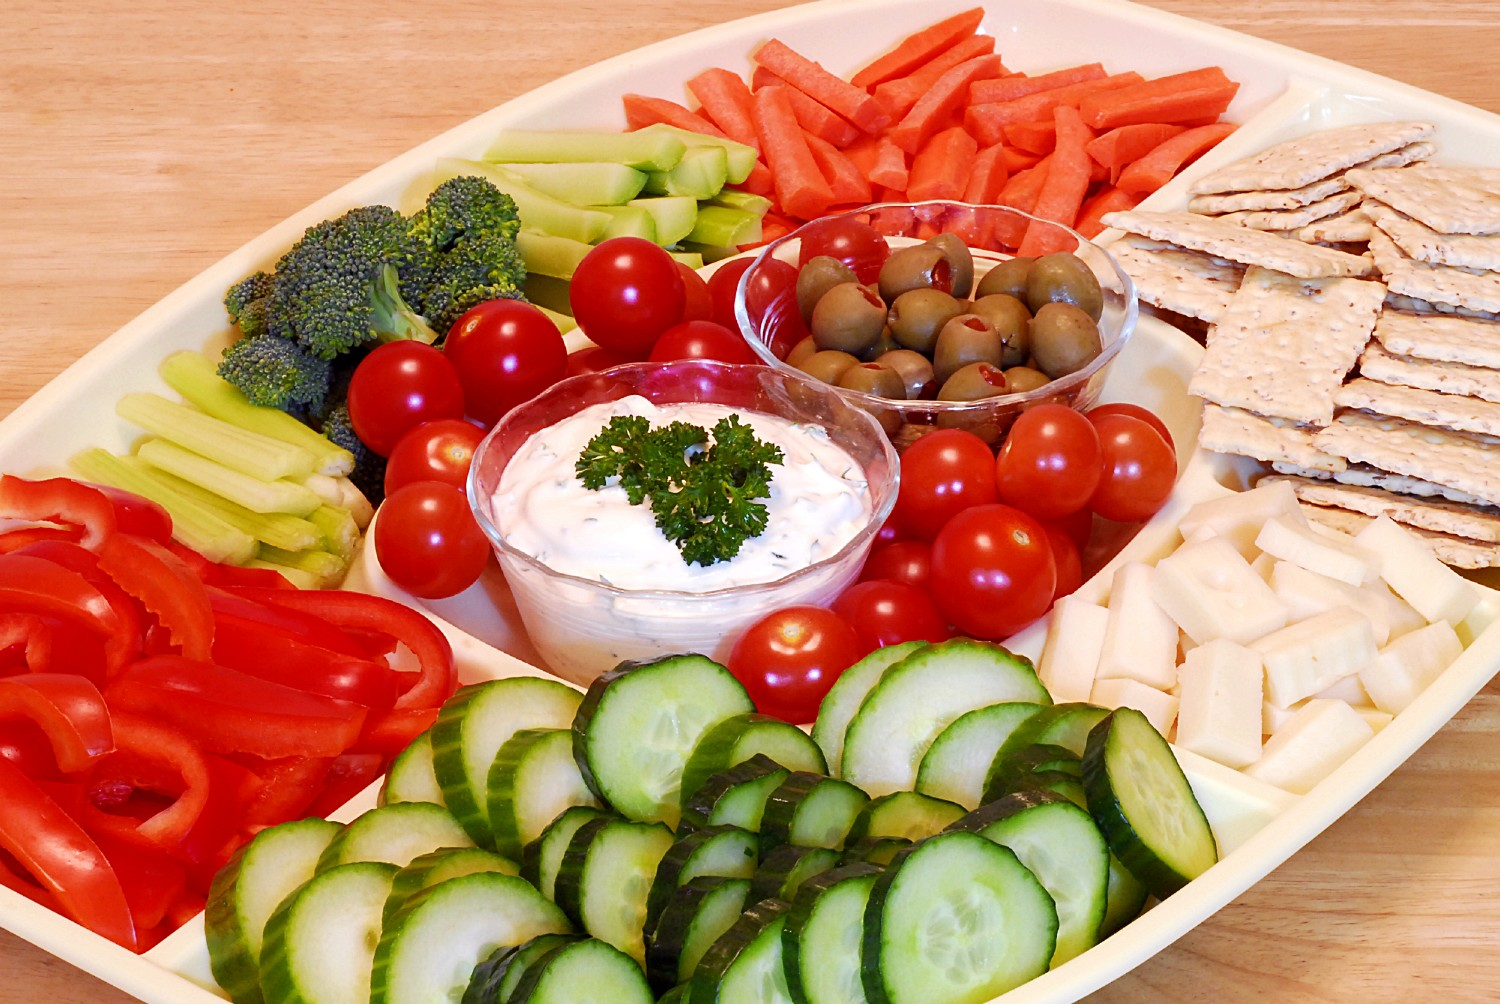 Vegetable Tray-1